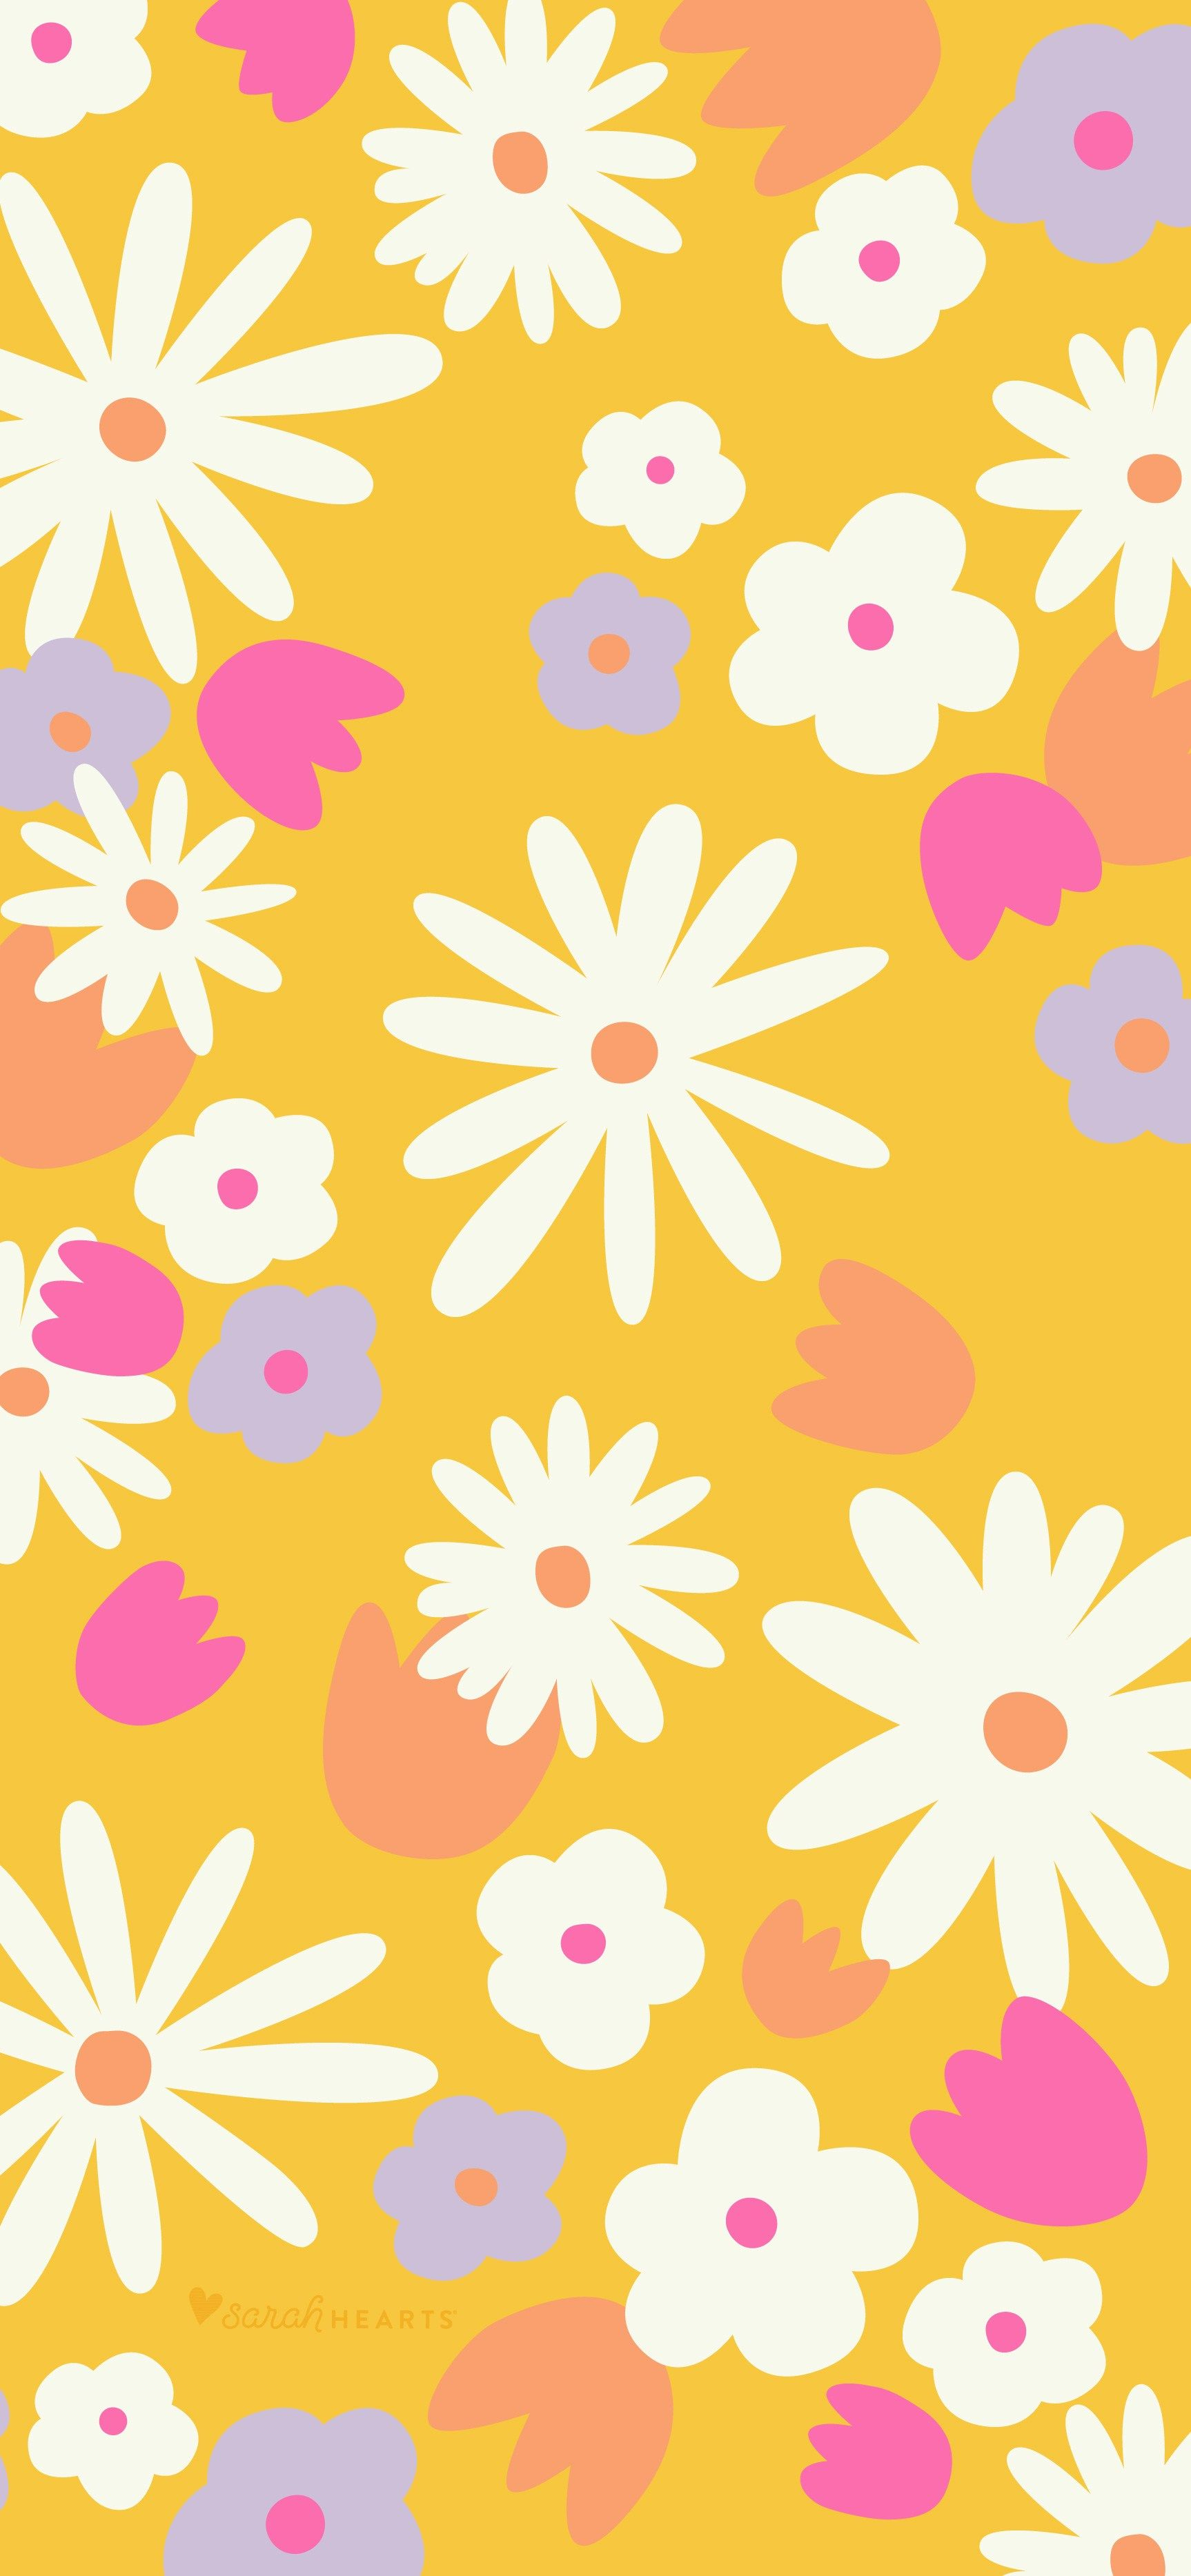 June 2020 Floral Calendar Wallpaper - Sarah Hearts